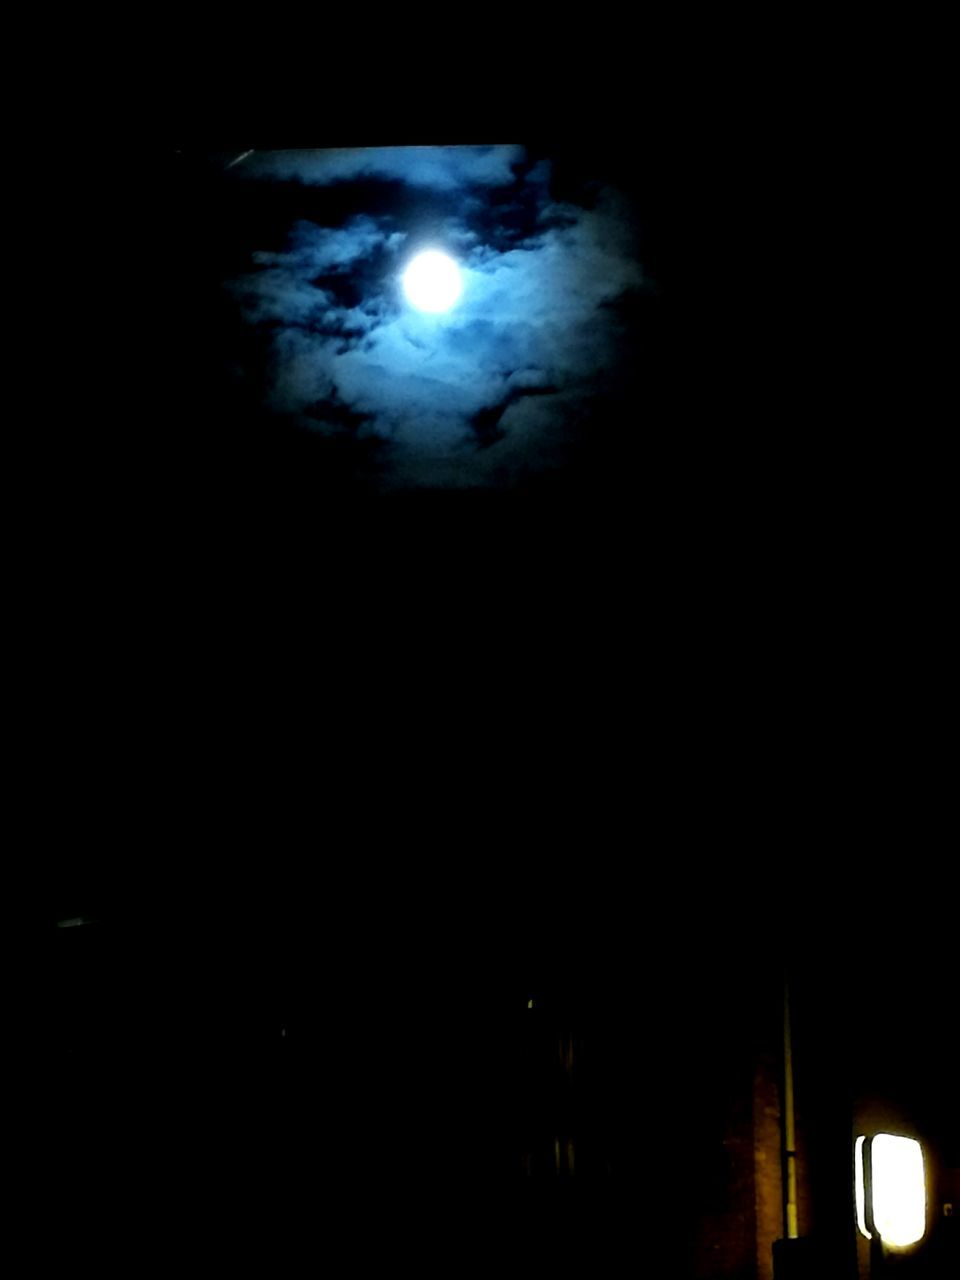 moon, night, dark, low angle view, moon surface, illuminated, sky, no people, astronomy, nature, beauty in nature, indoors, space